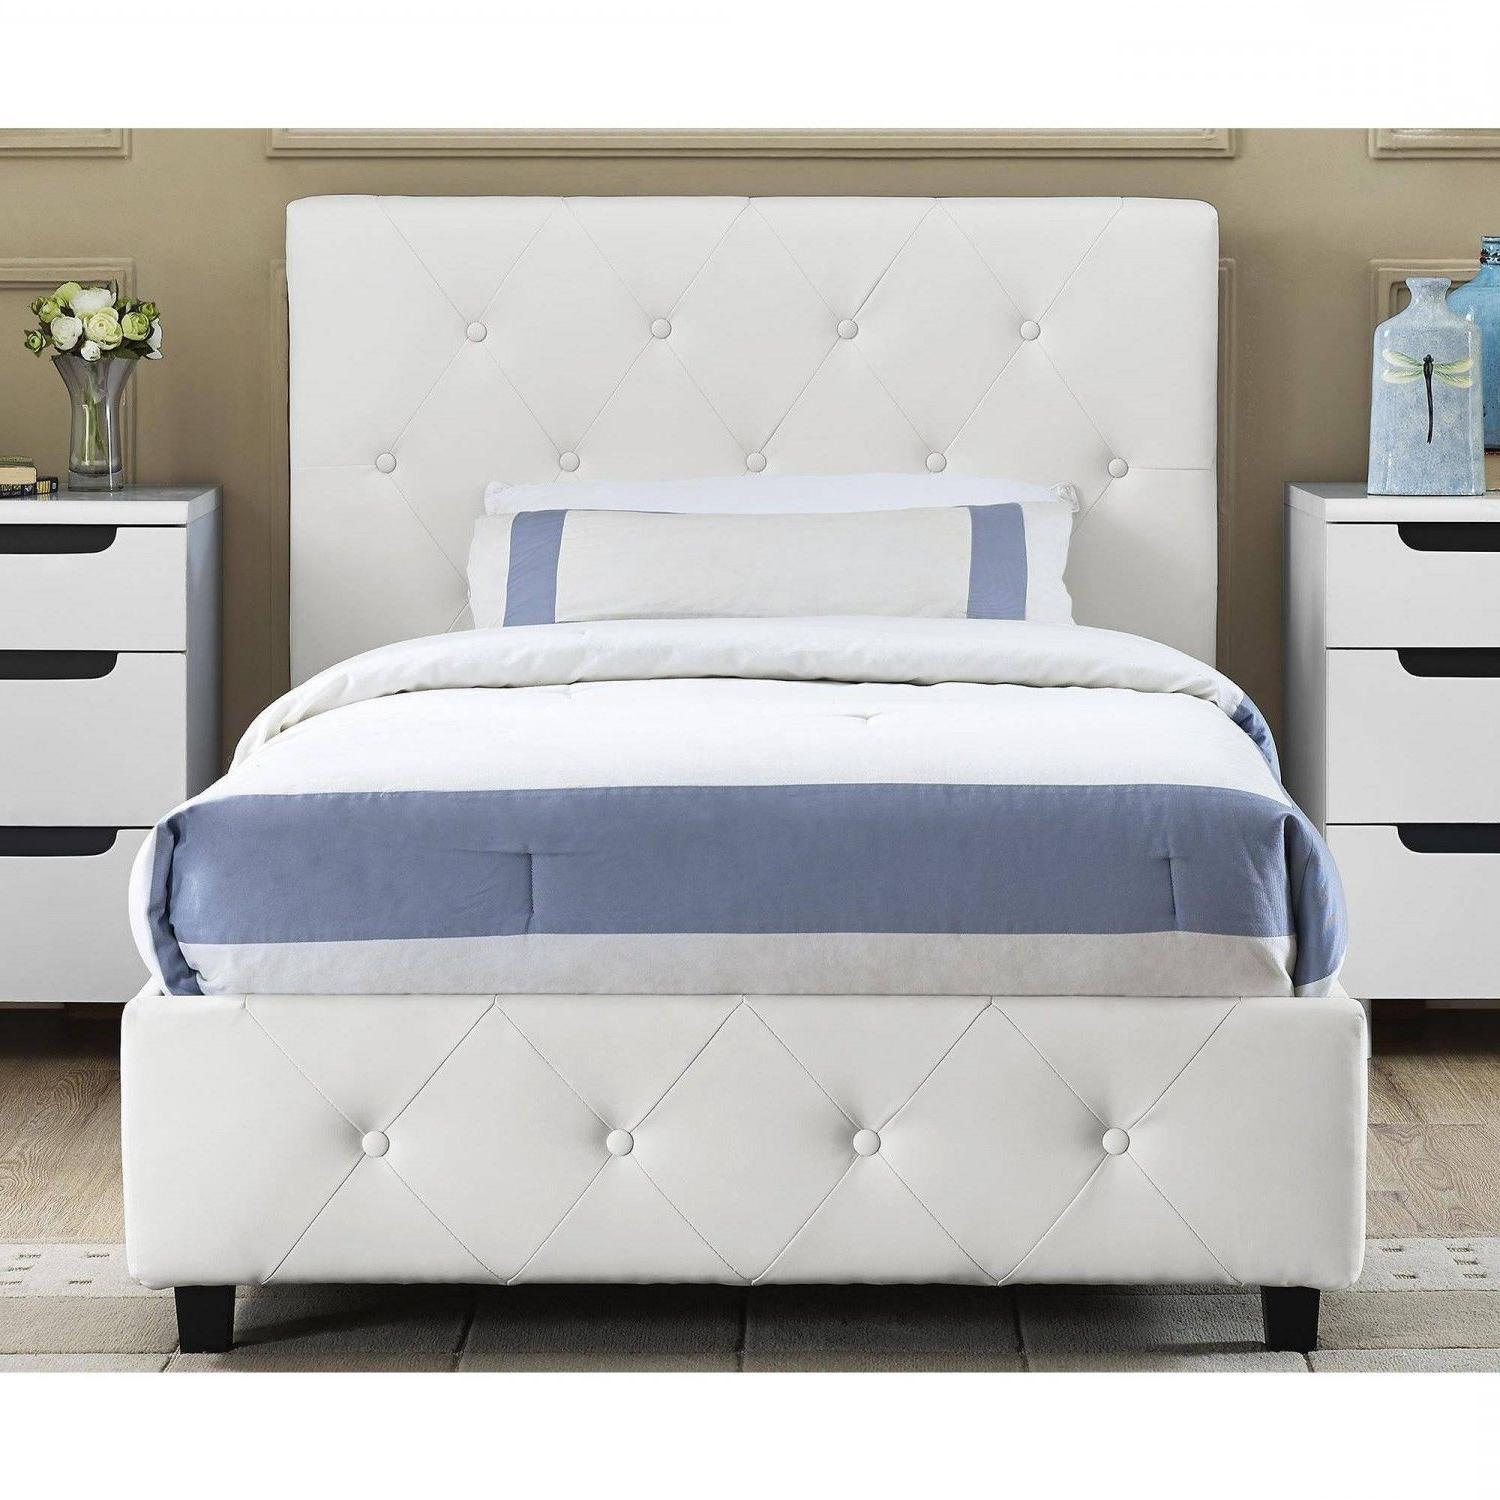 Headboard Bed Leather White Tufted Twin Full Queen Size